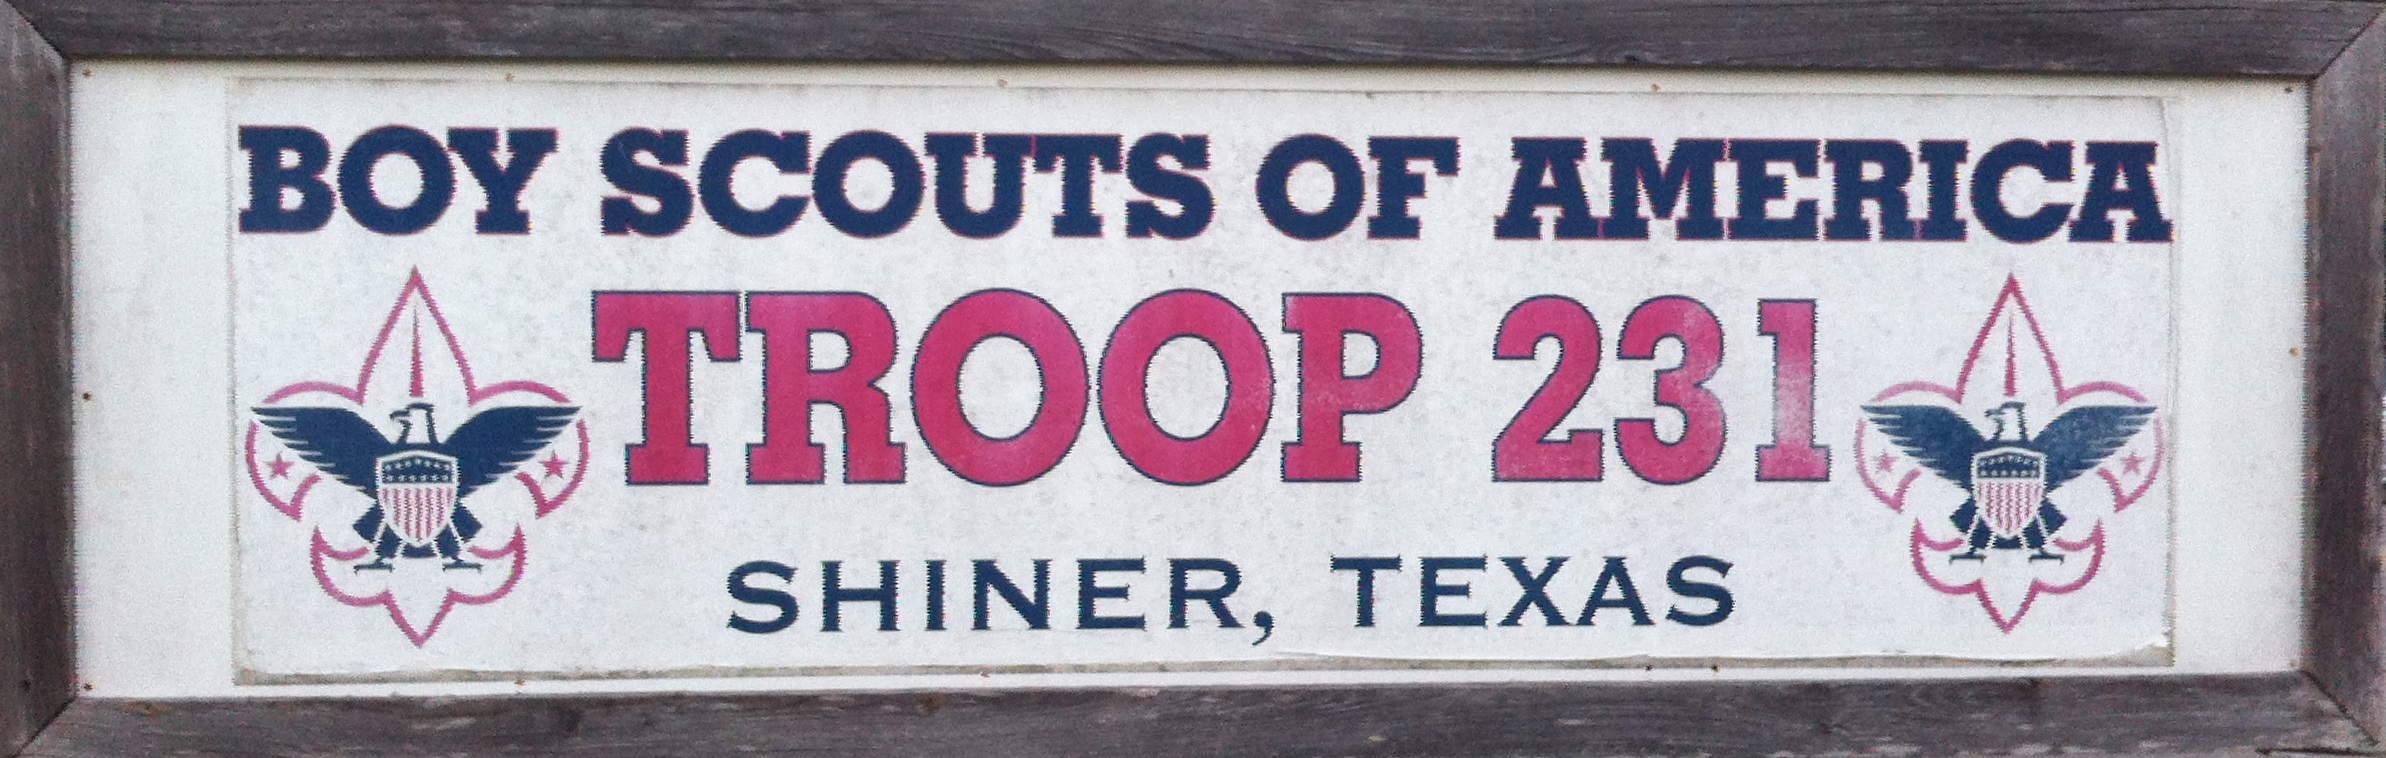 SHINER TROOP 231